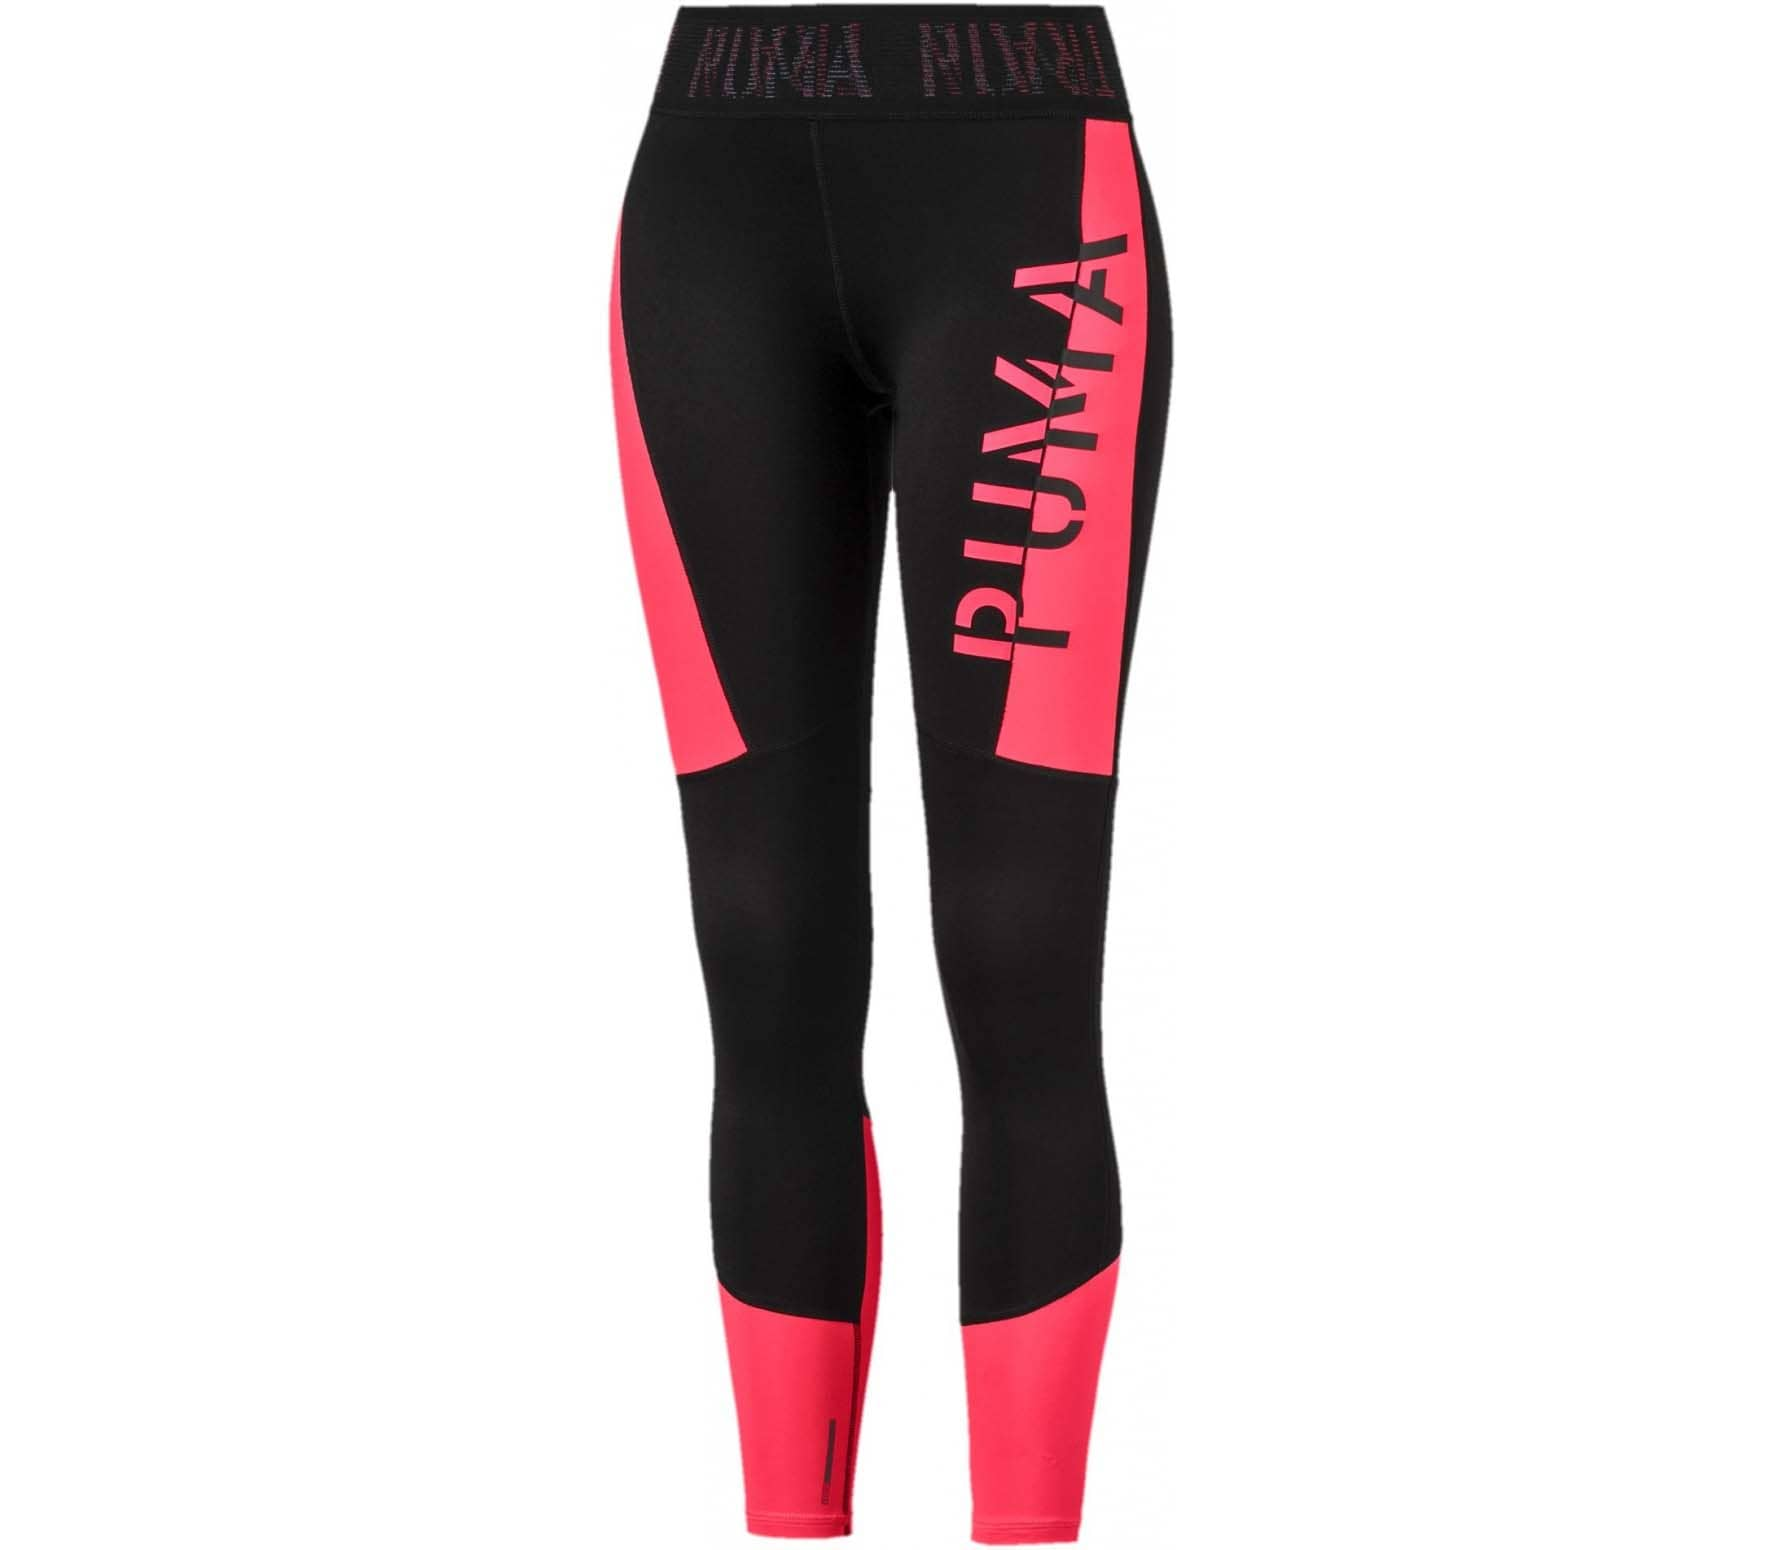 fca0d232 Puma Logo 7/8 Tight Women Training Tights multicoloured